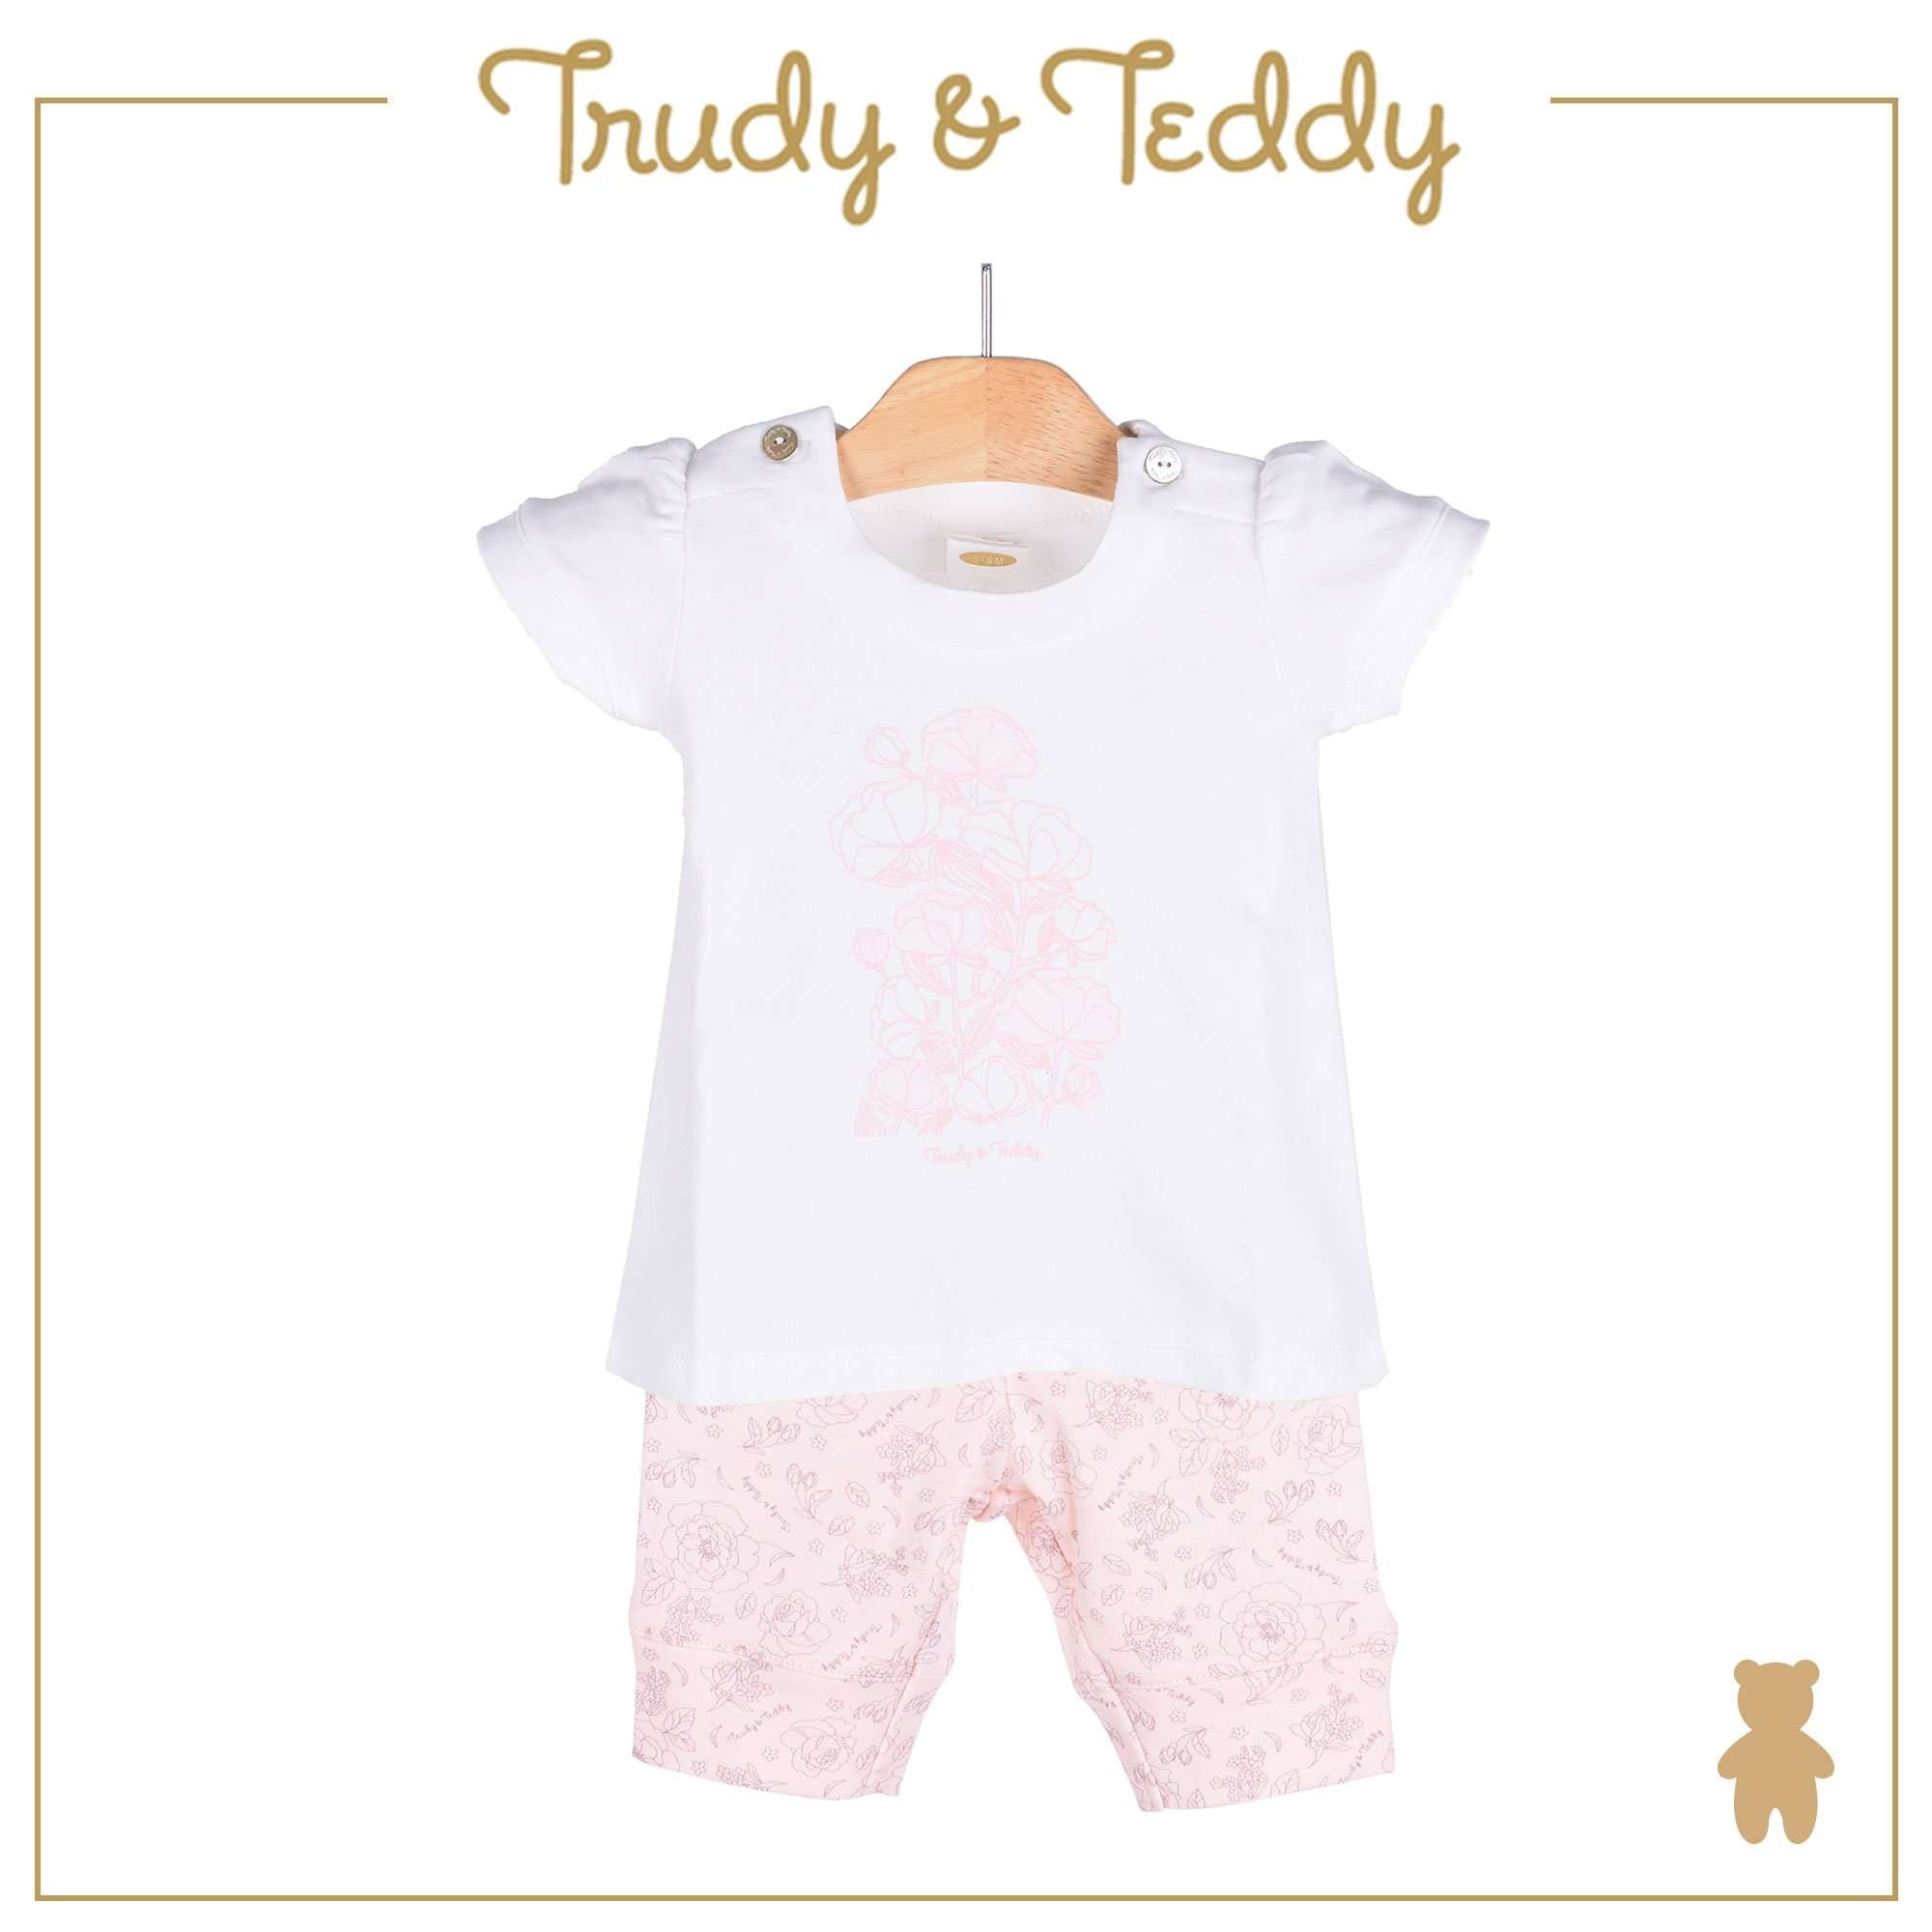 Trudy & Teddy Baby Girl Short Sleeve Bermuda Suit 820028-413 : Buy Trudy & Teddy online at CMG.MY